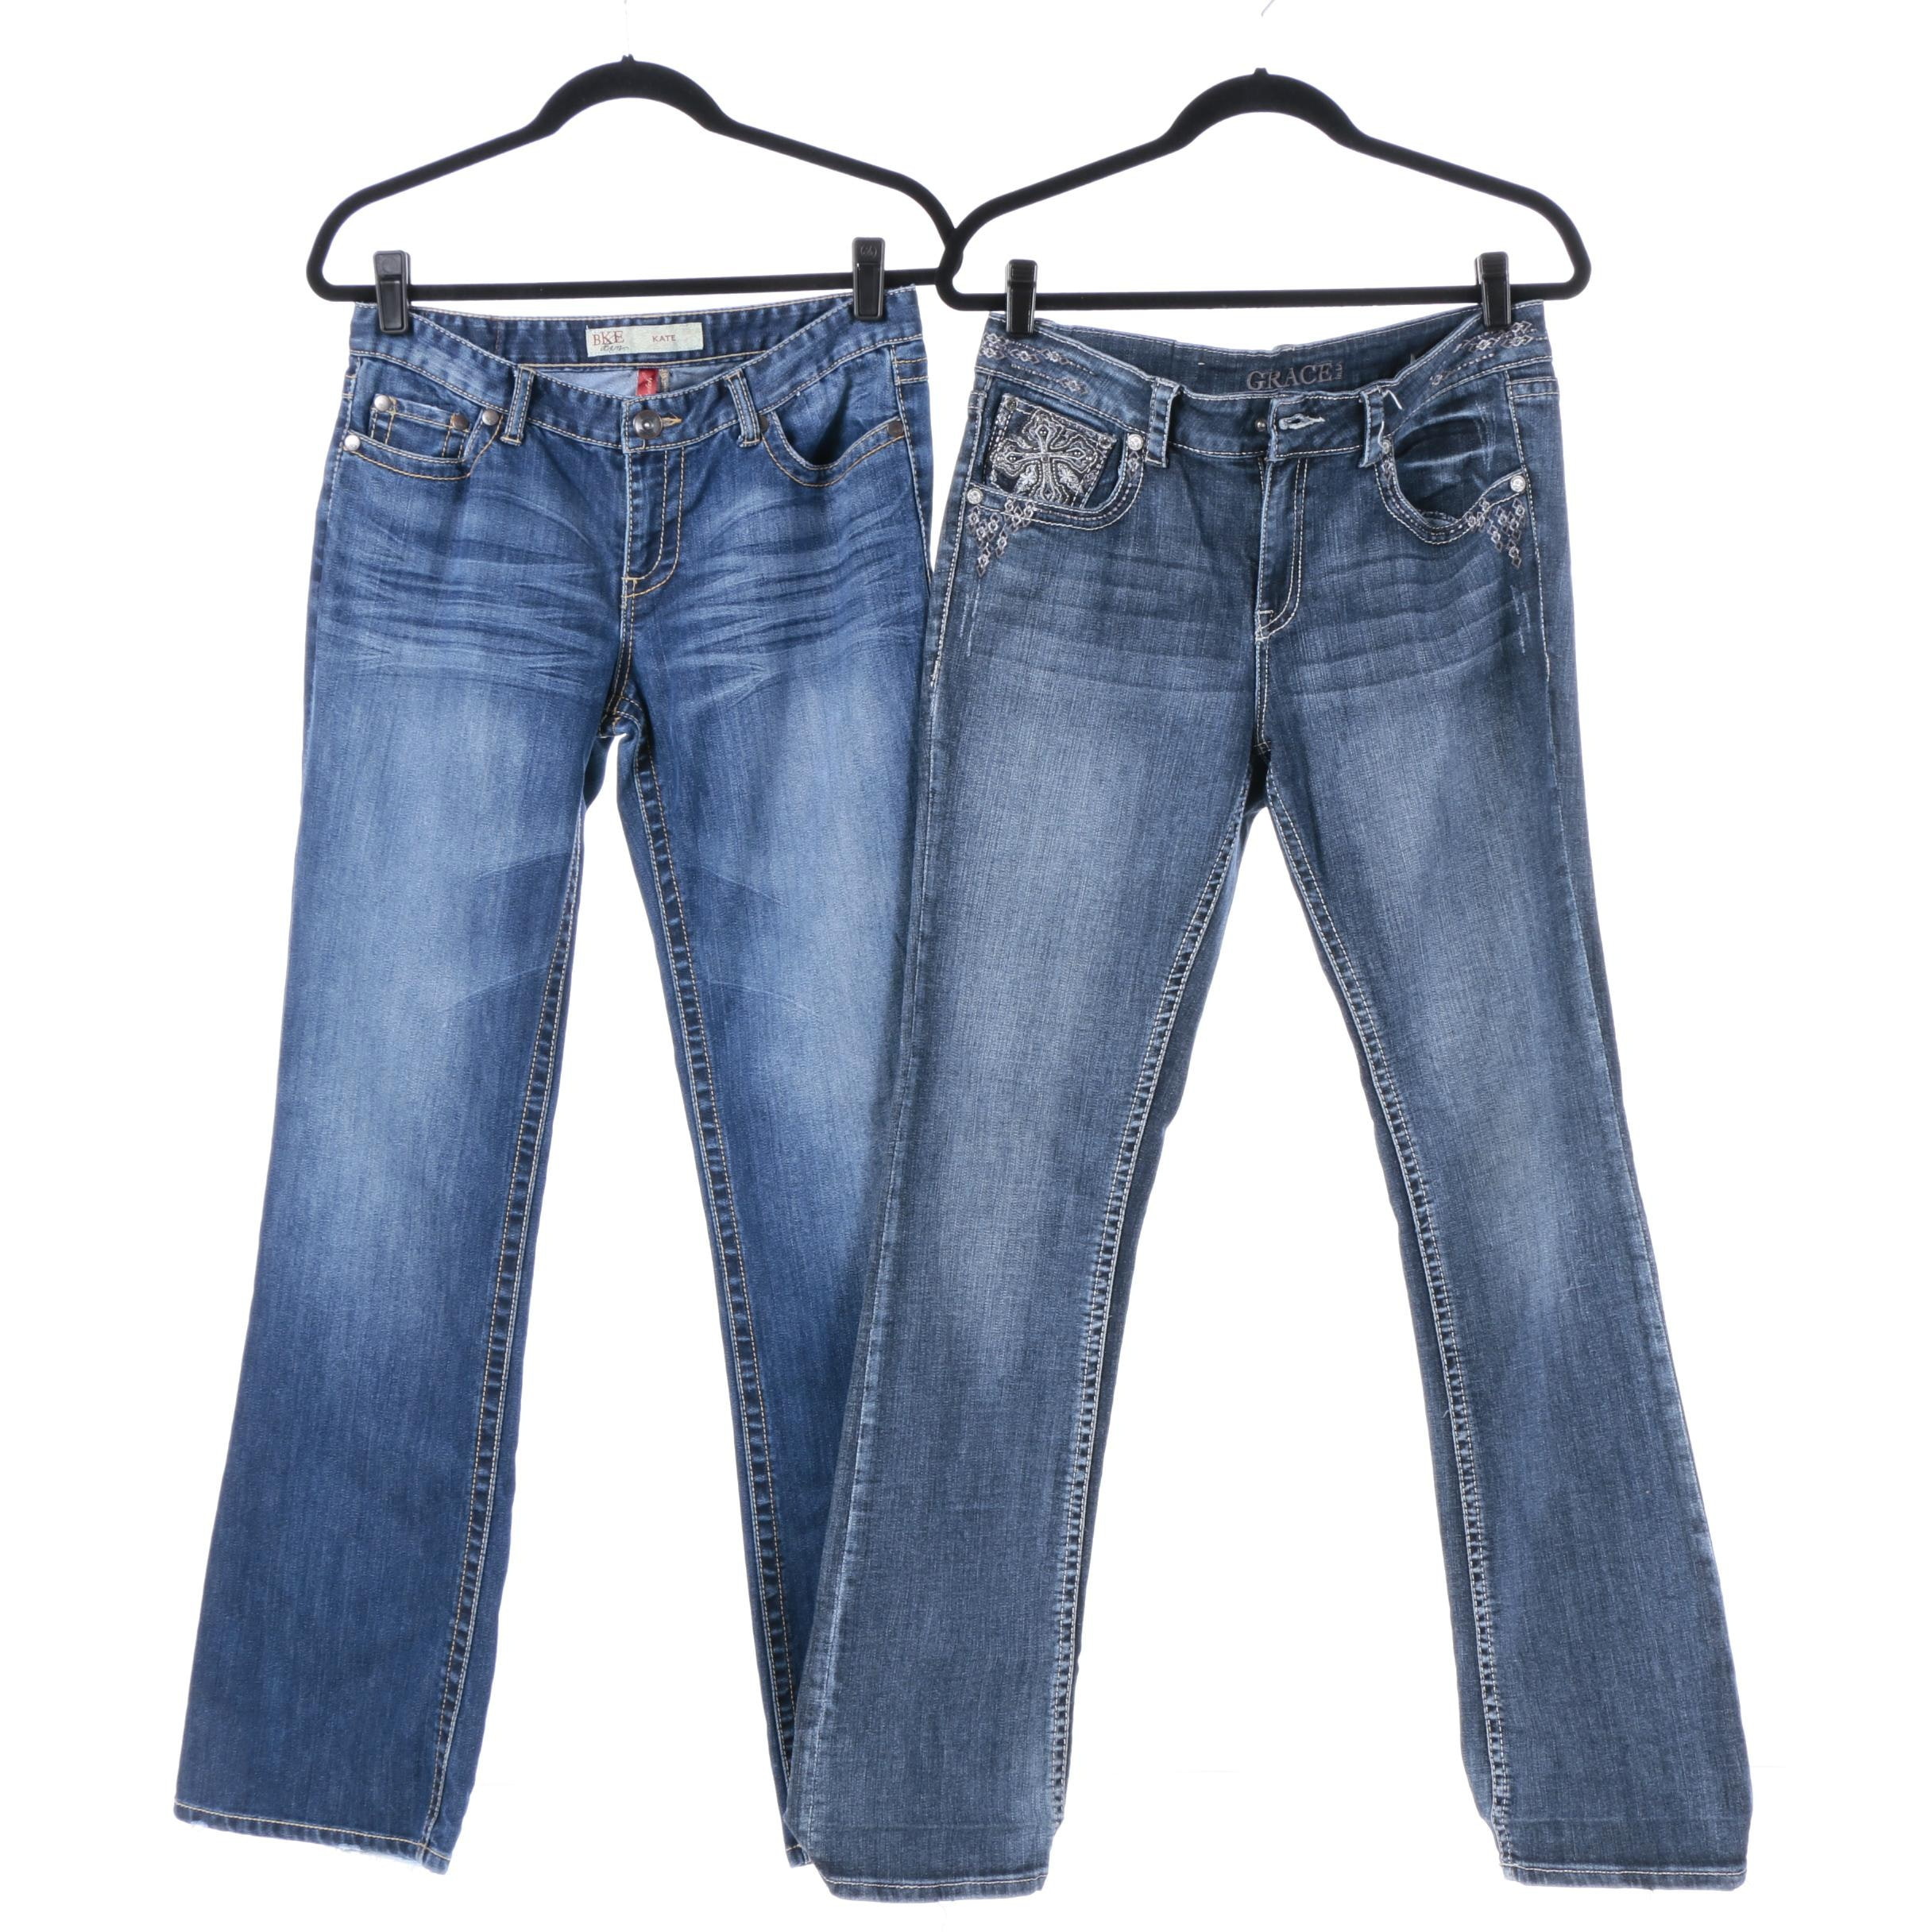 Women's Jeans Including BKE Denim and Grace in L.A.